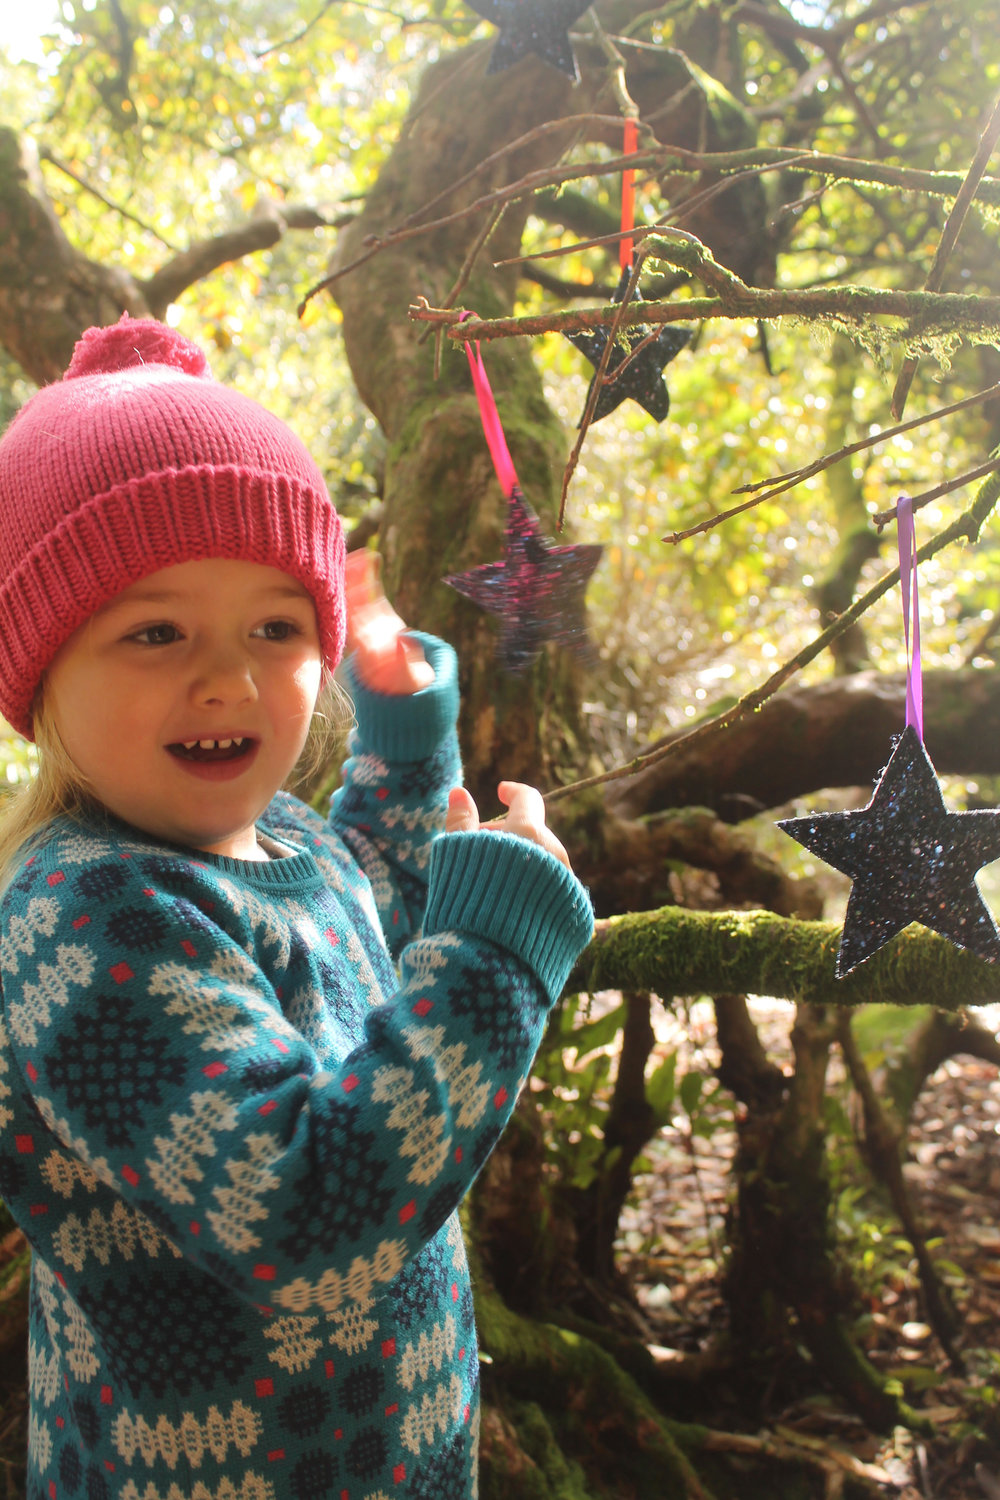 Fairies left some stars in trees for Mabel! Here she's wearing the Vintage Pink Otto Bobble Beanie and the Kingfisher Portcullis Jumper.